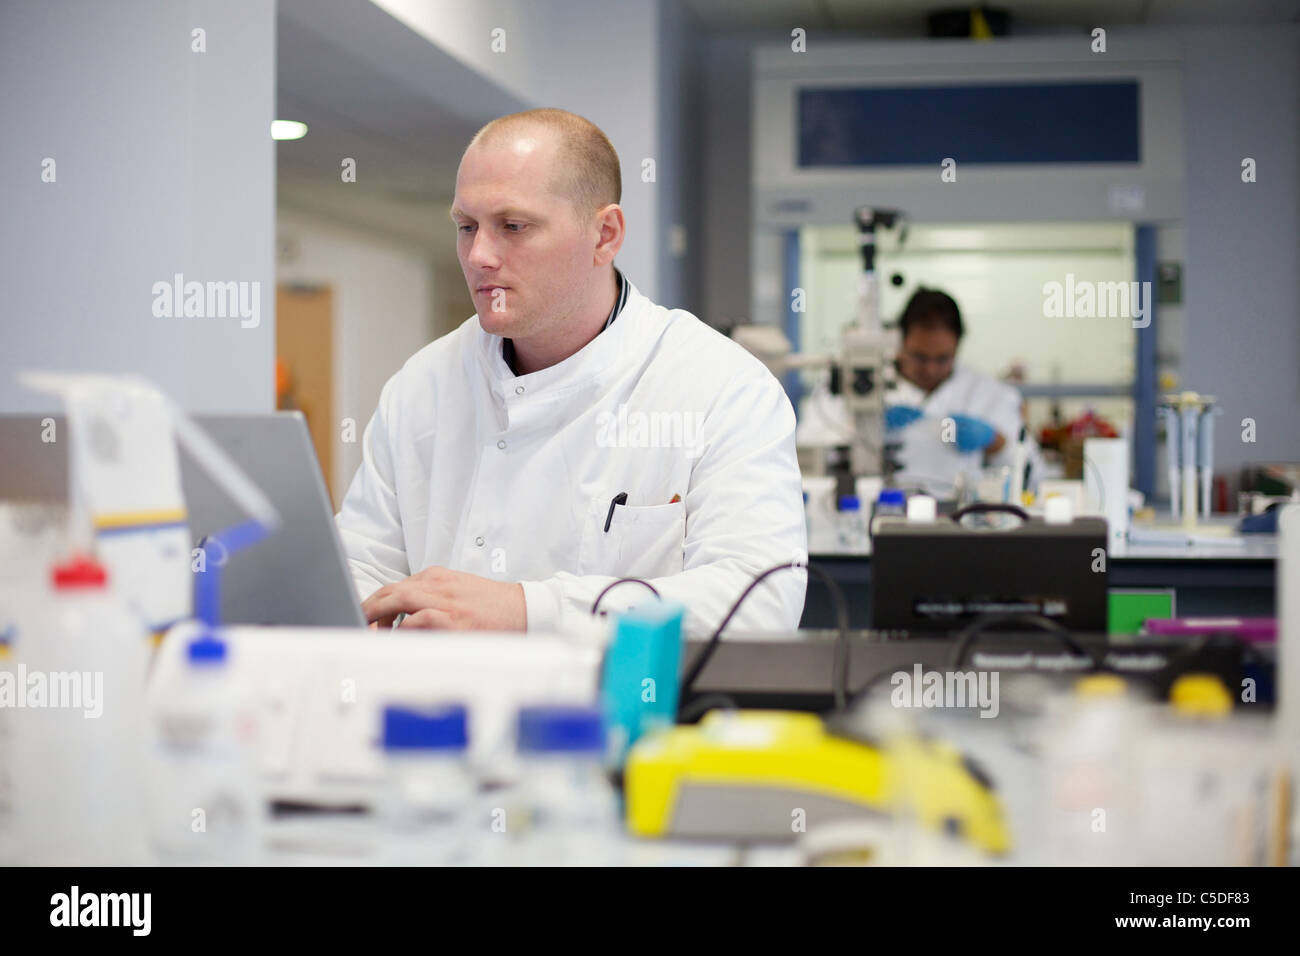 Wednesday 6th July 2011 Lab technician at work in the Leeds Metropolitan University. Bio Chemistry Laboratories. - Stock Image